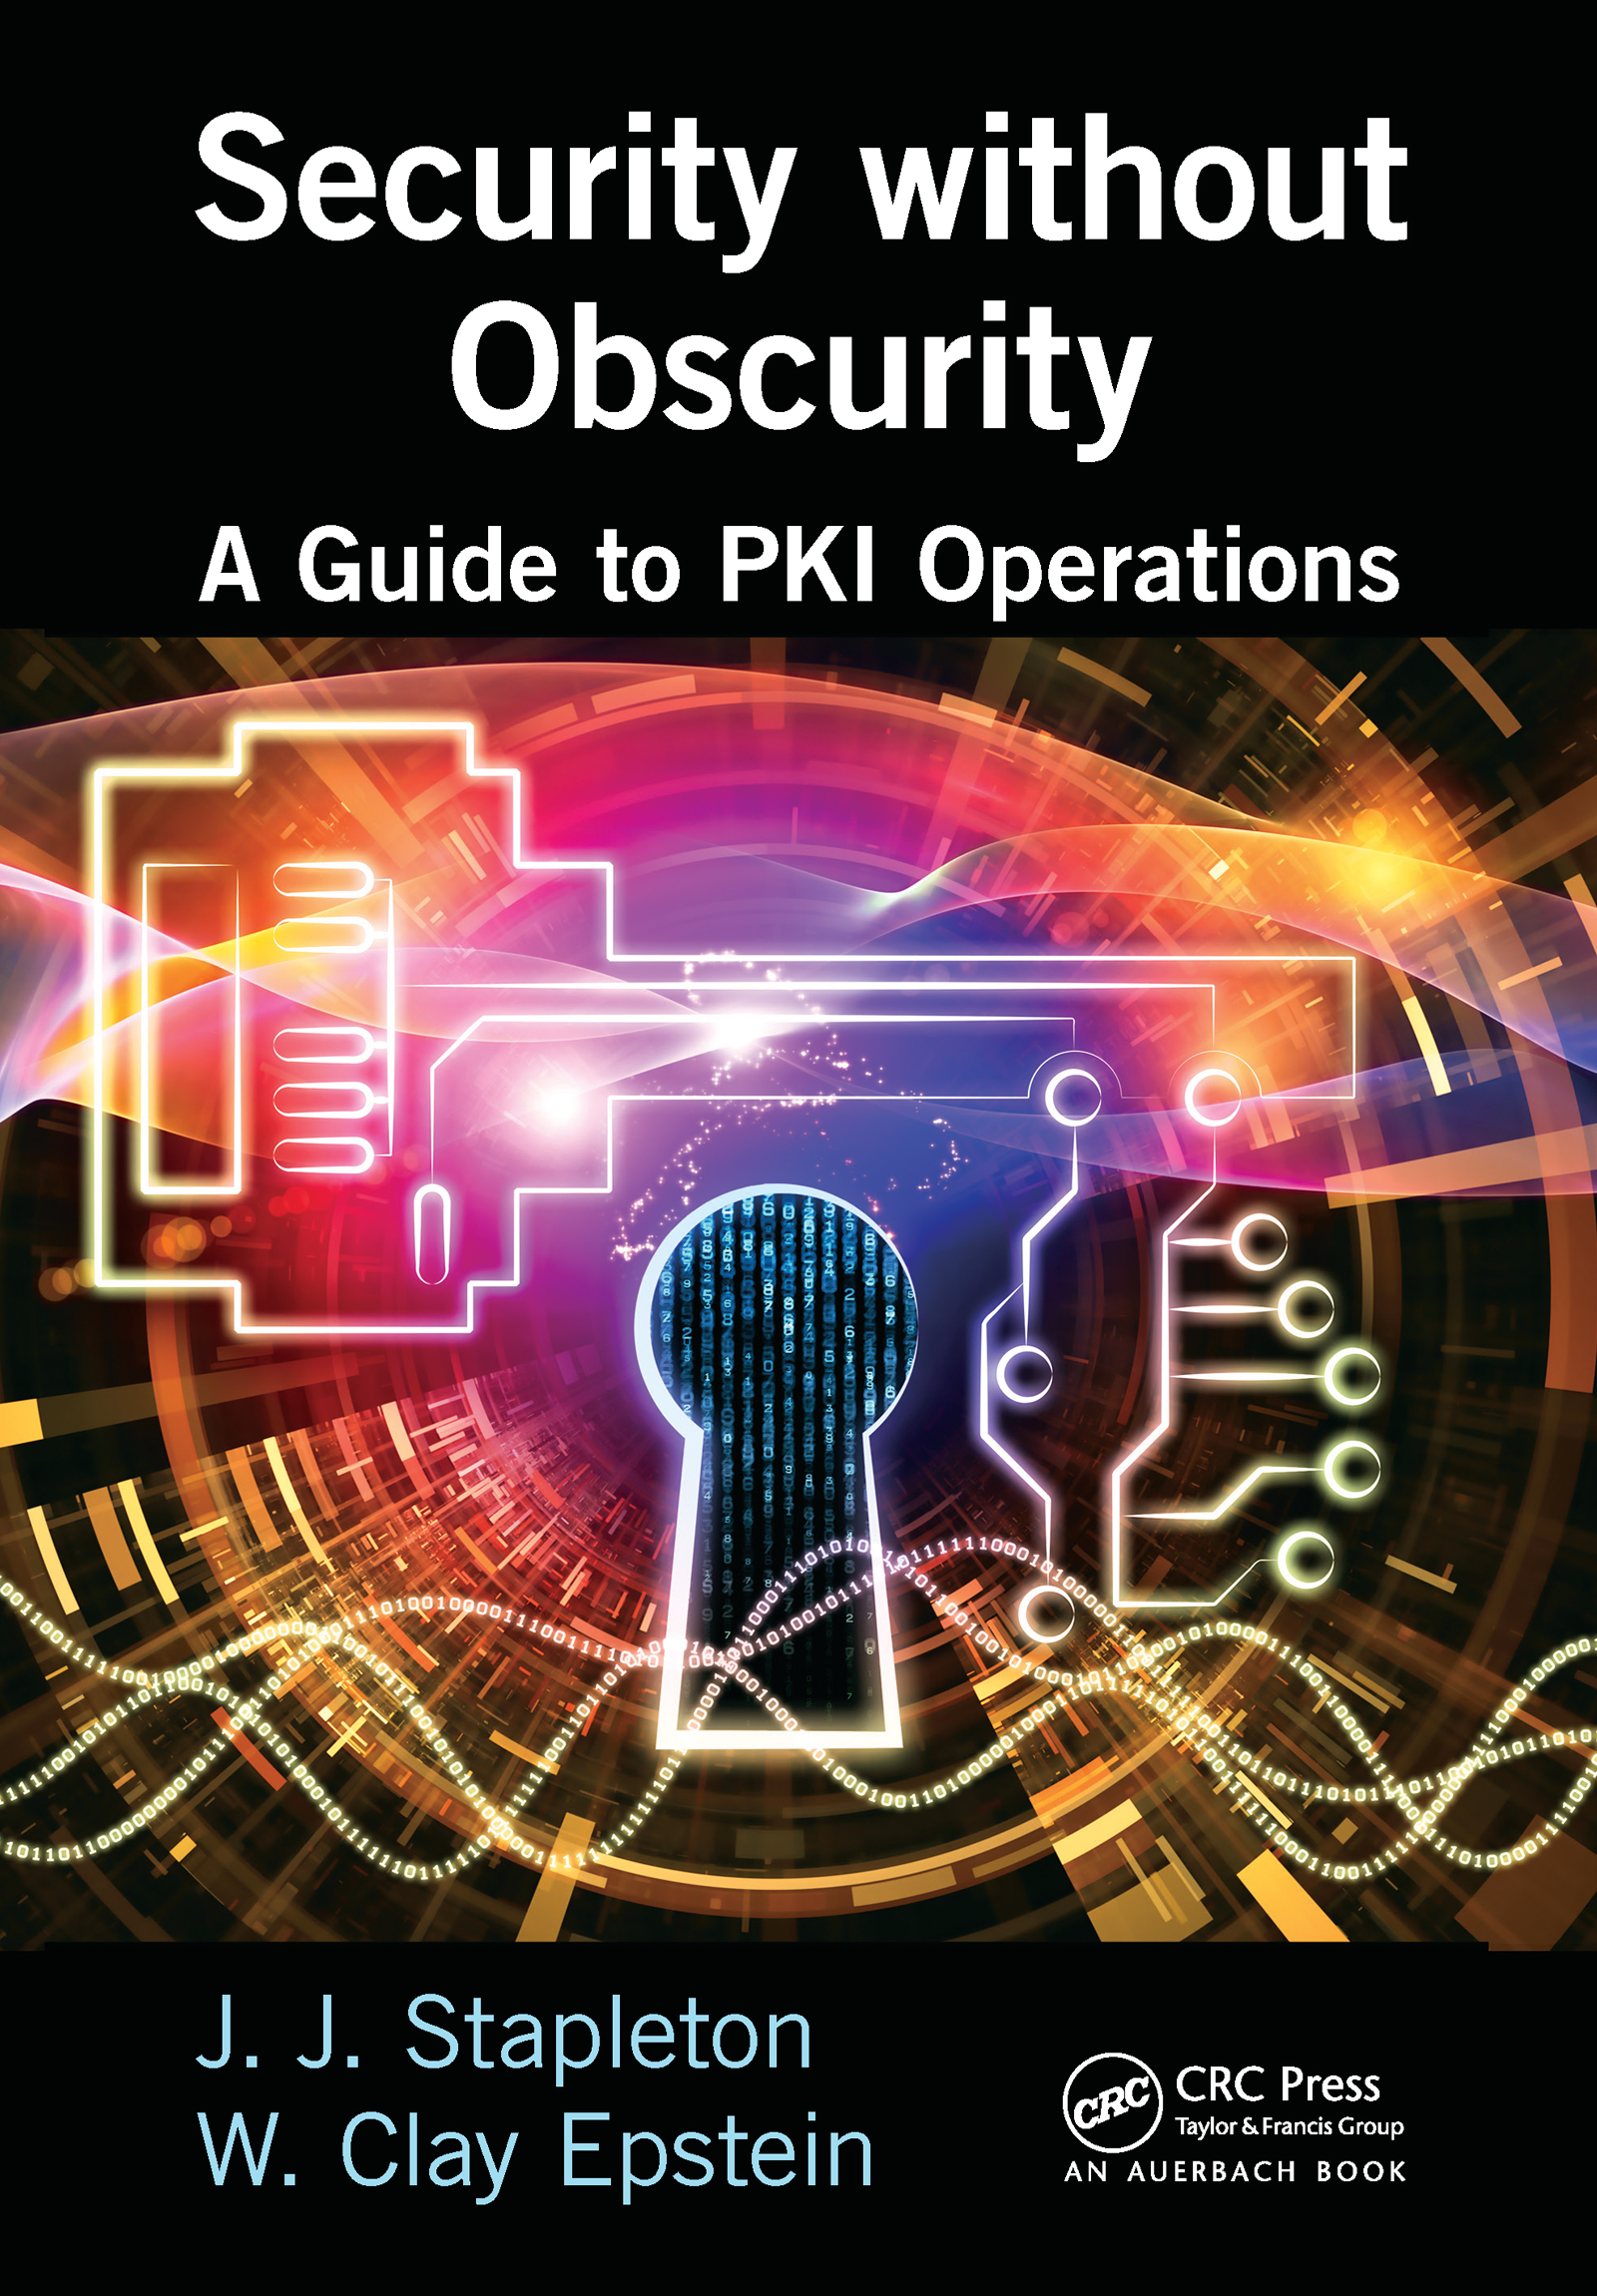 Security without Obscurity